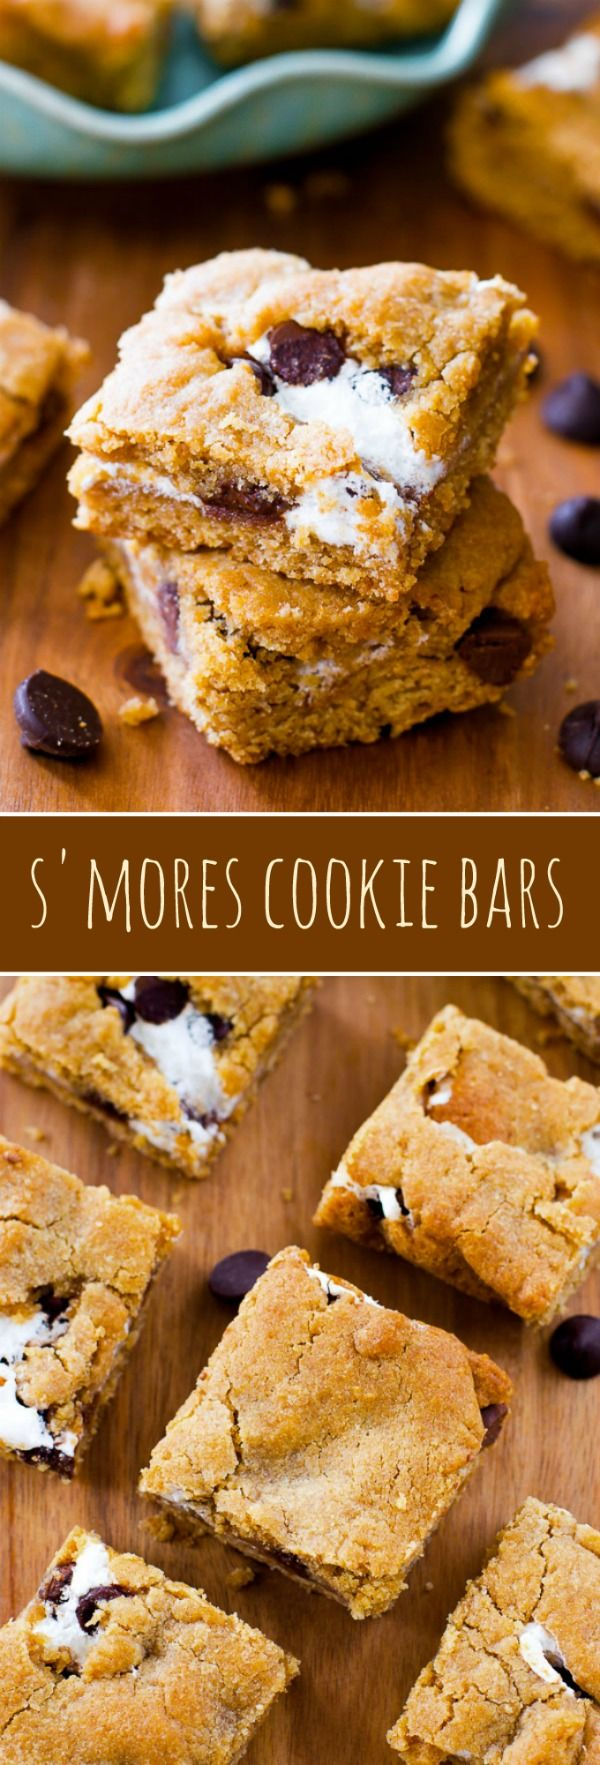 Soft and chewy graham cookie bars stuffed with marshmallow and chocolate to make S'MORES cookie bars! Recipe on sallysbakingaddiction.com